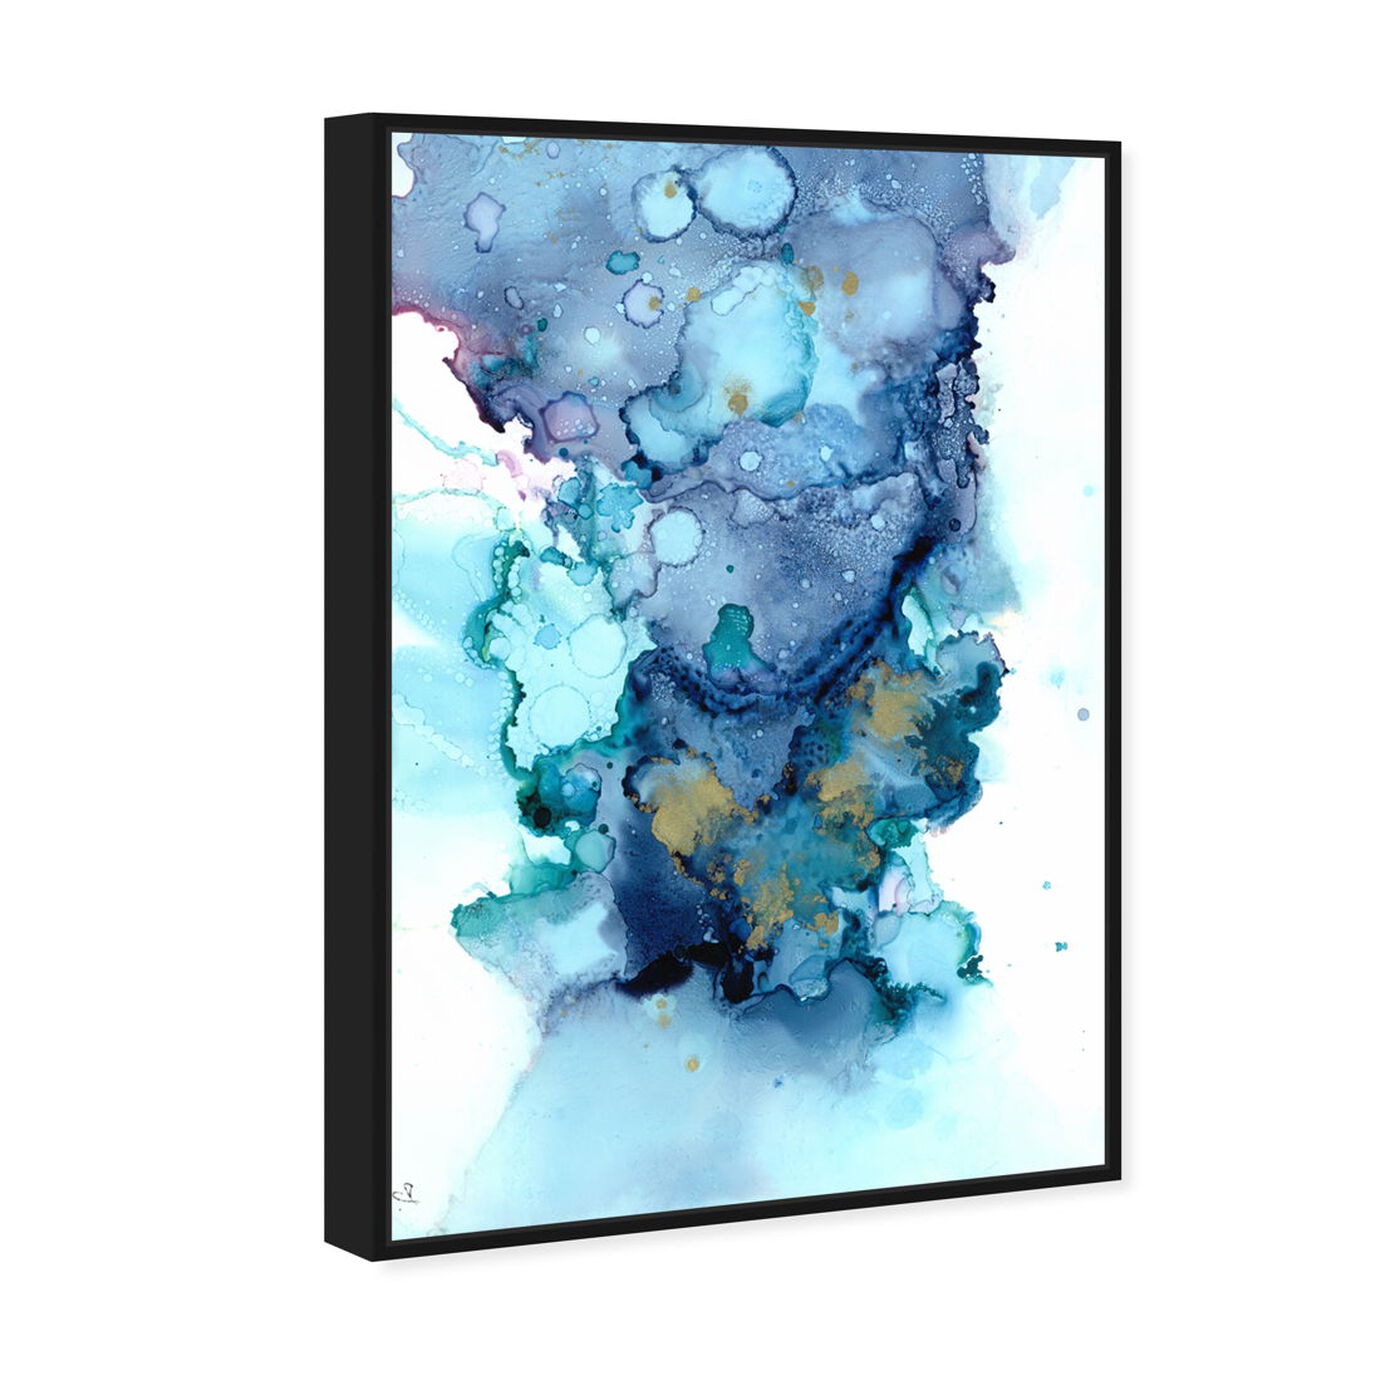 Angled view of Jamie Blicher - Whitney featuring abstract and watercolor art.